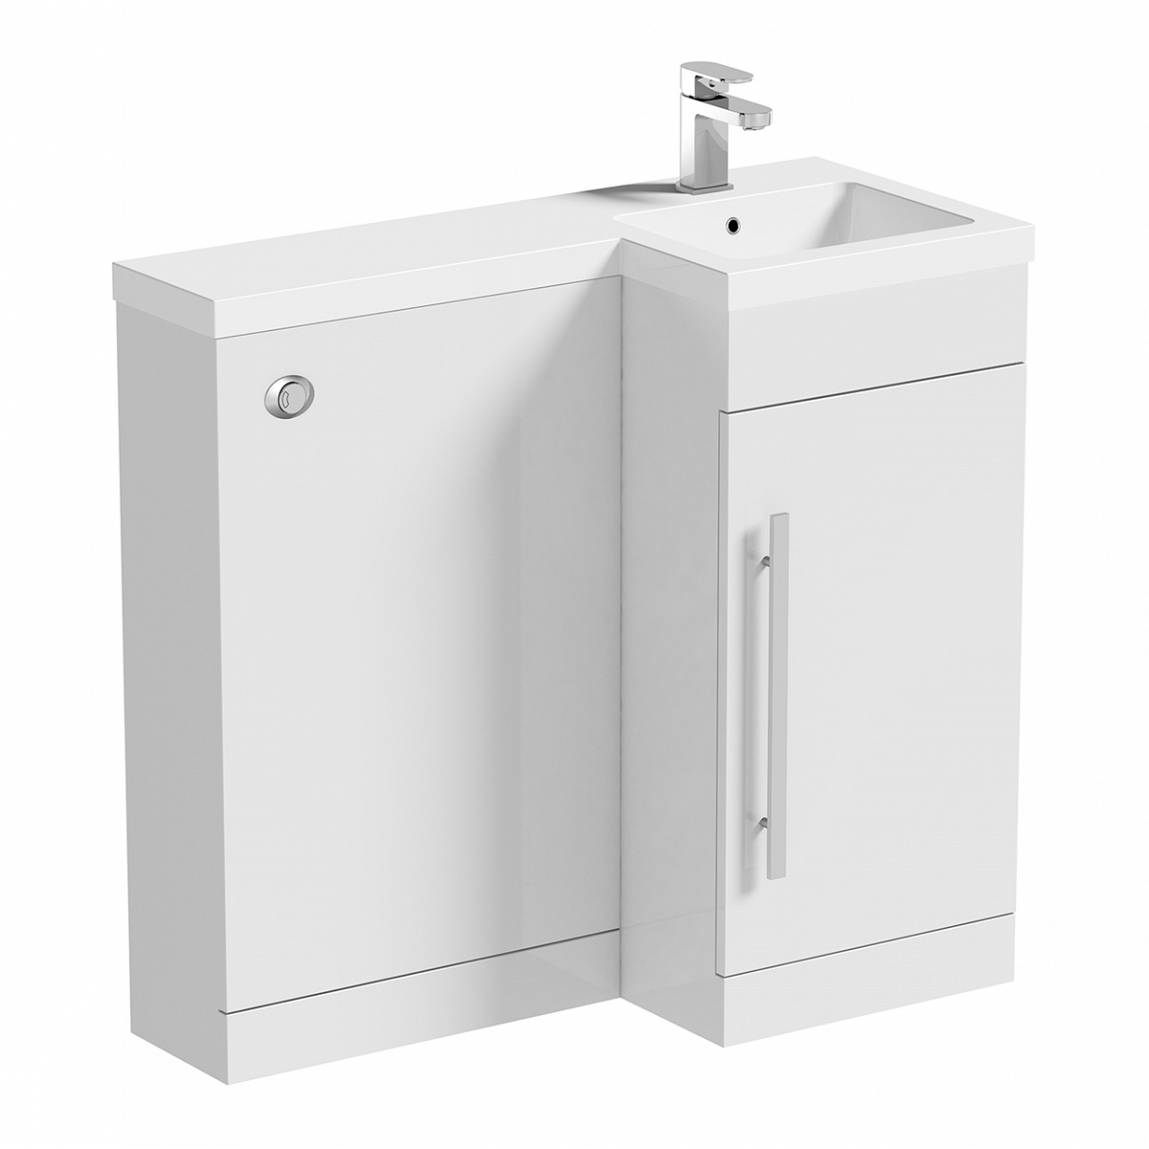 Image of MySpace White Combination Unit RH including Concealed Cistern